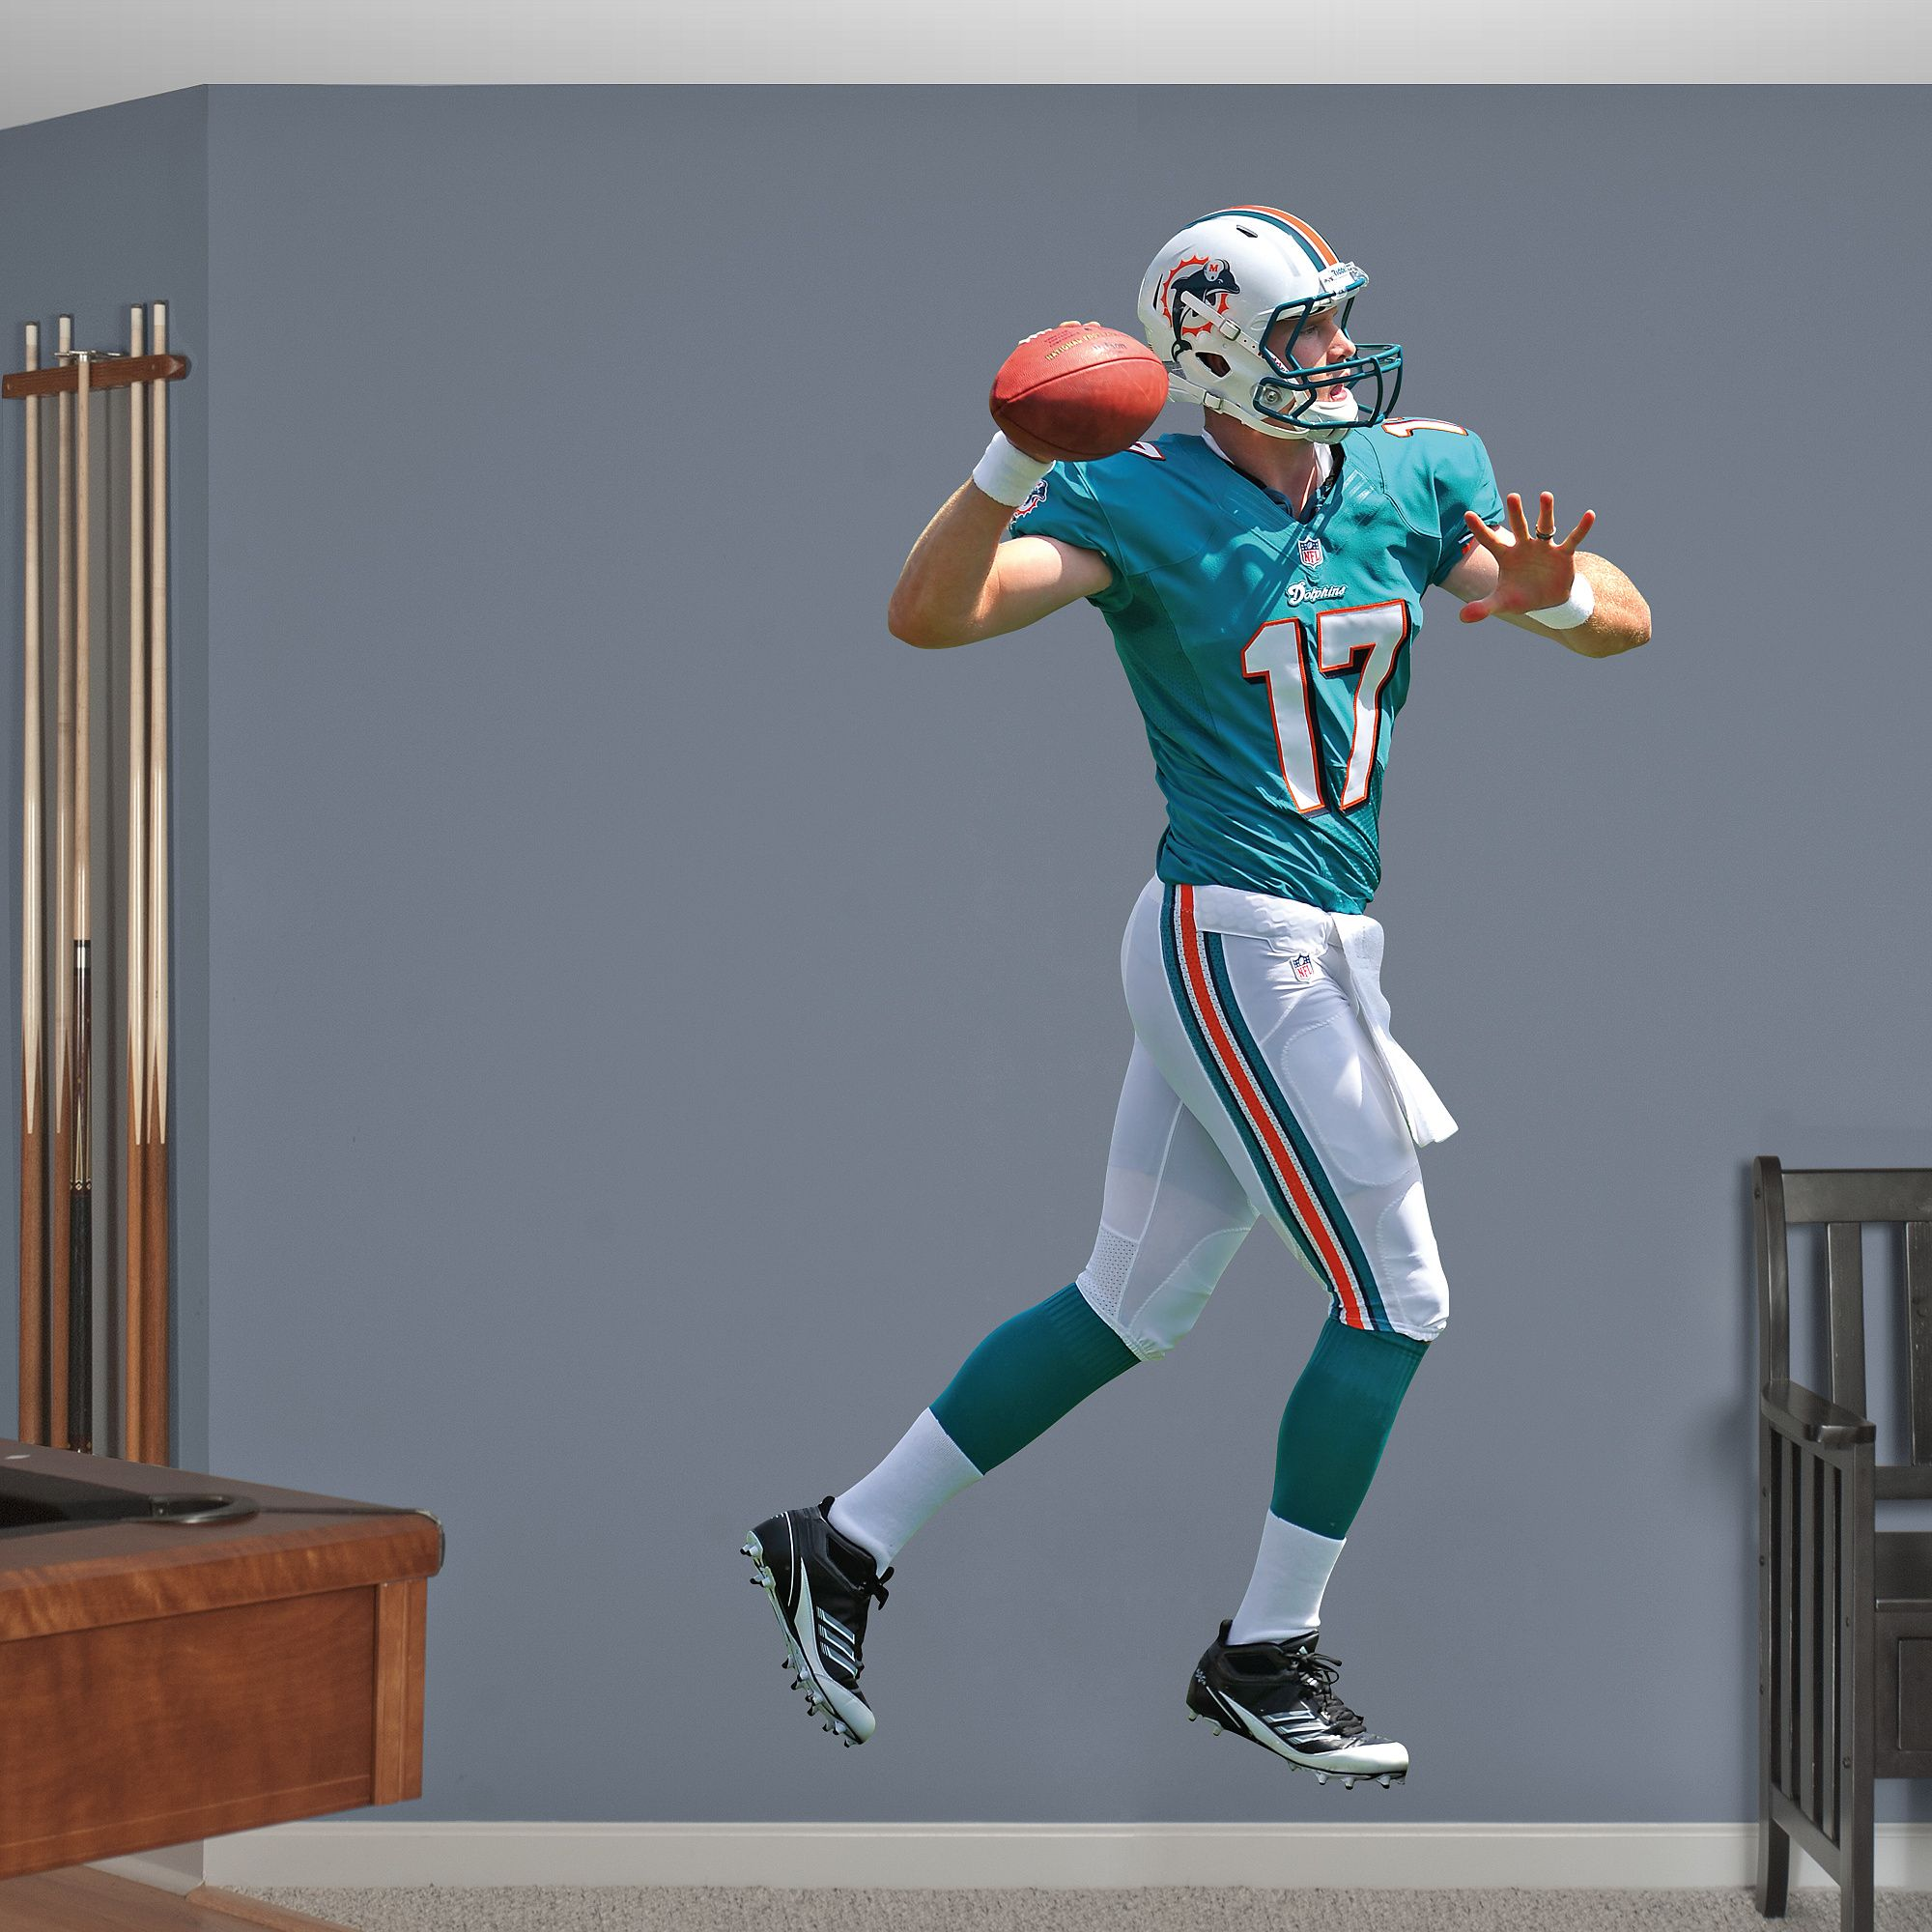 Fathead Wall Decal | Miami Dolphins Wall Decal